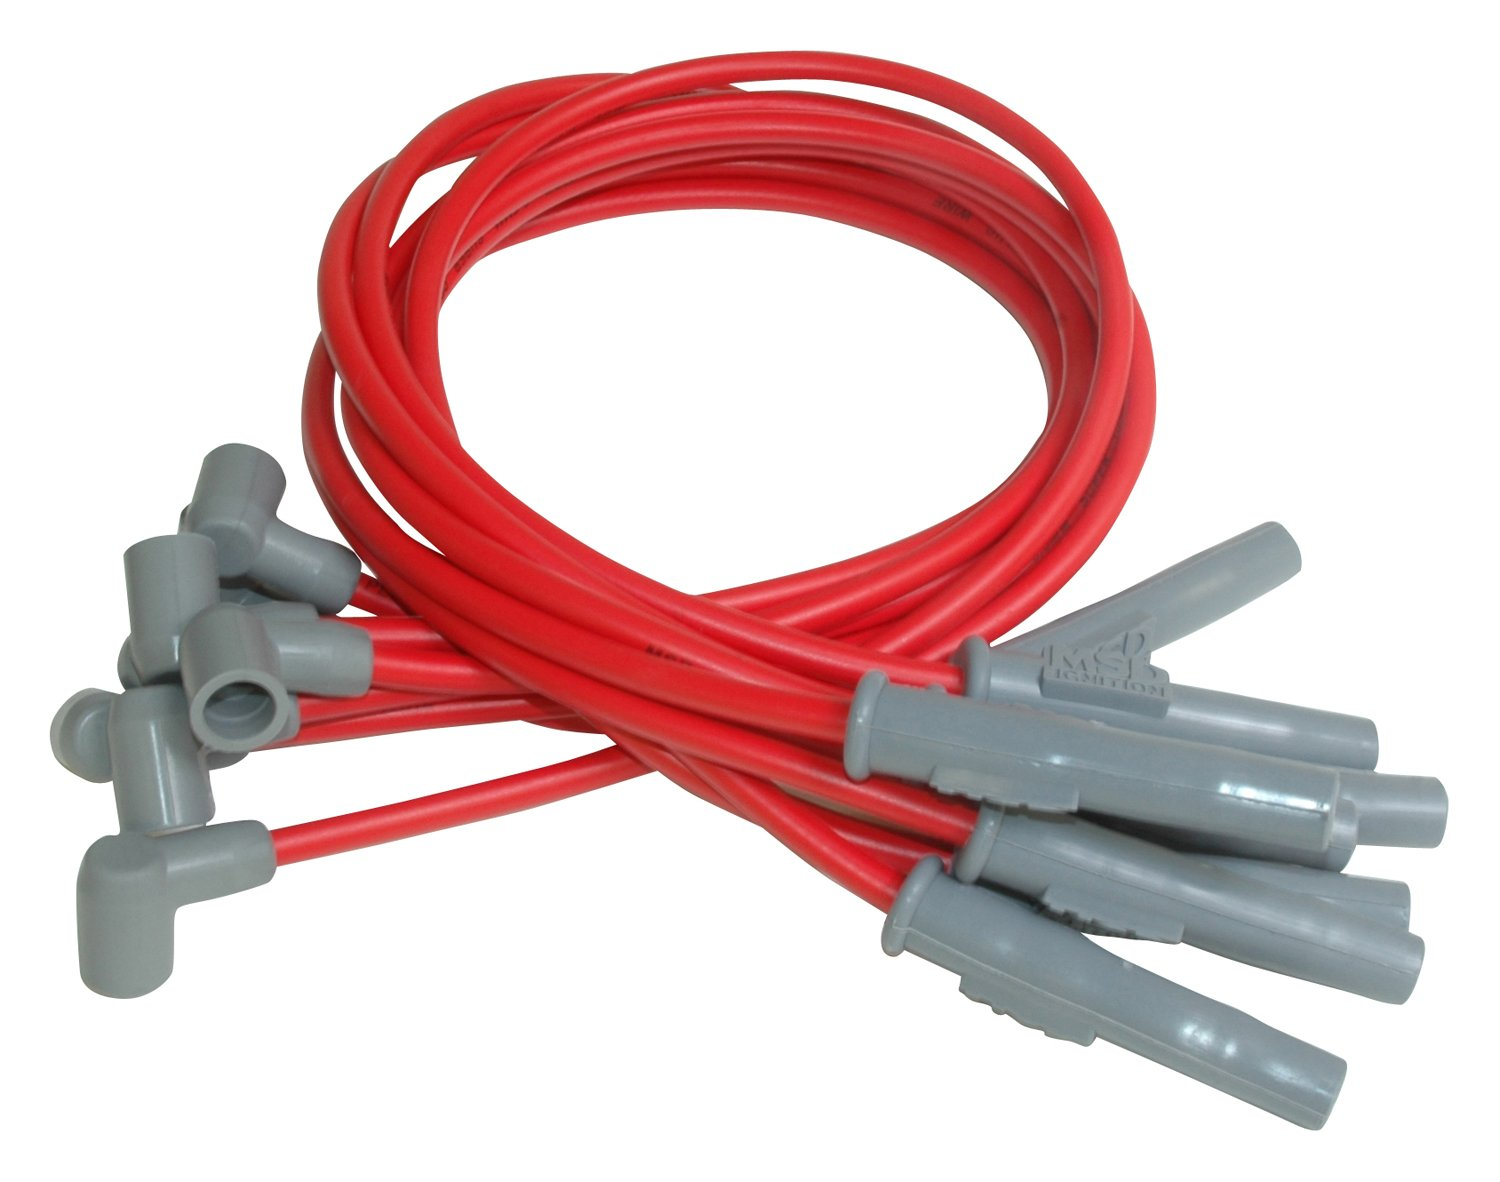 hight resolution of 31379 super conductor spark plug wire set chevy 366 454 socket image